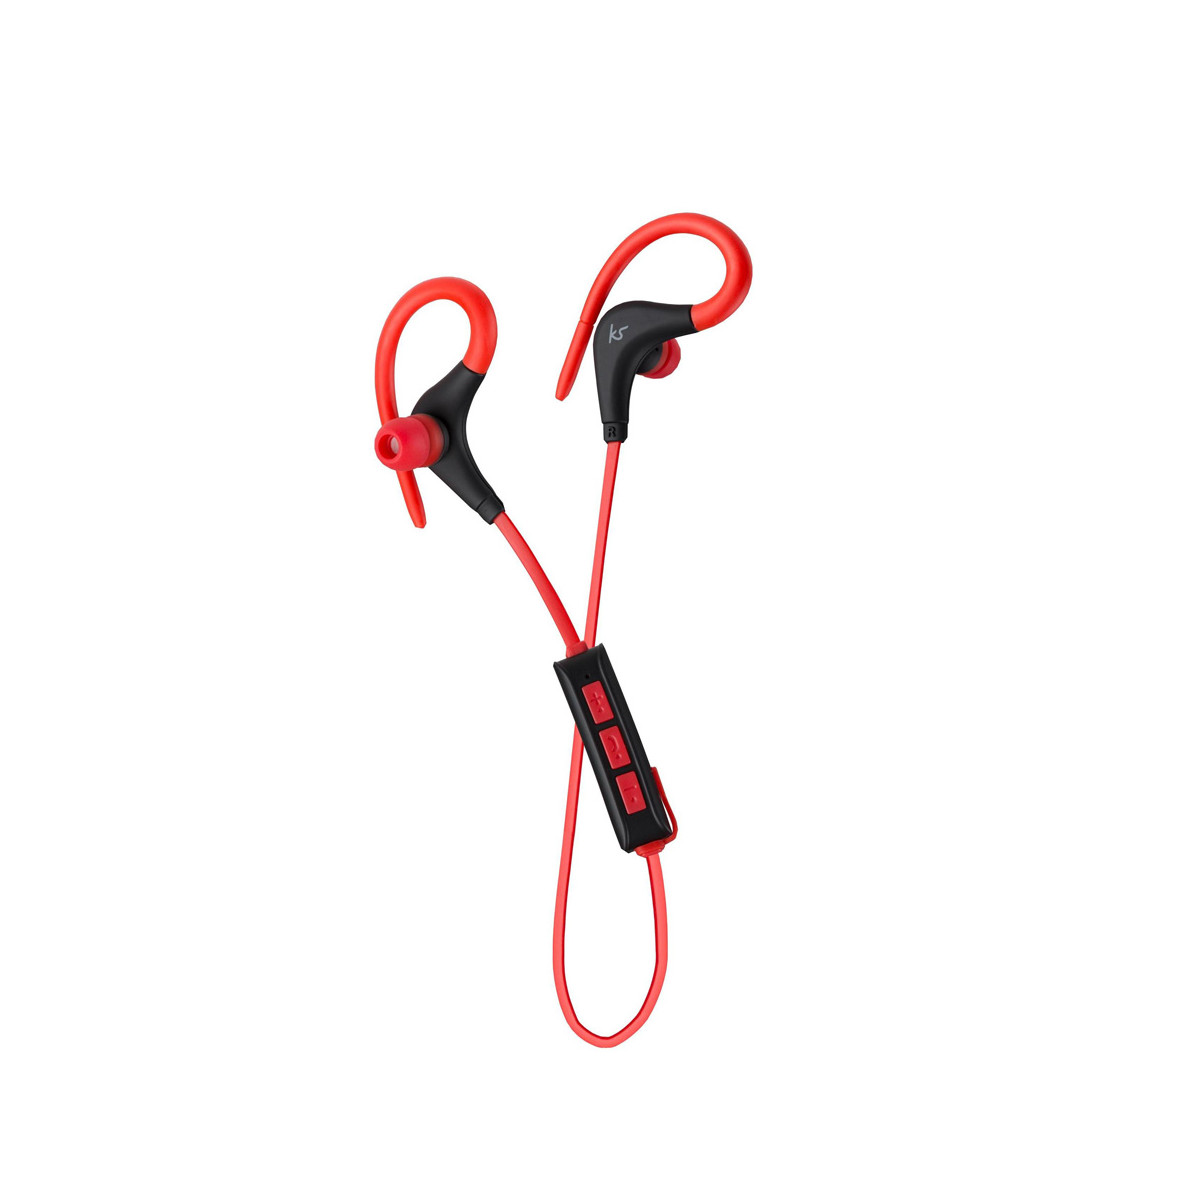 4dbbf6c1be9 Kitsound Race Sports Bluetooth Wireless Earphones – Red - Kitsound  Near Me | NearSt Find and buy products from real shops near you